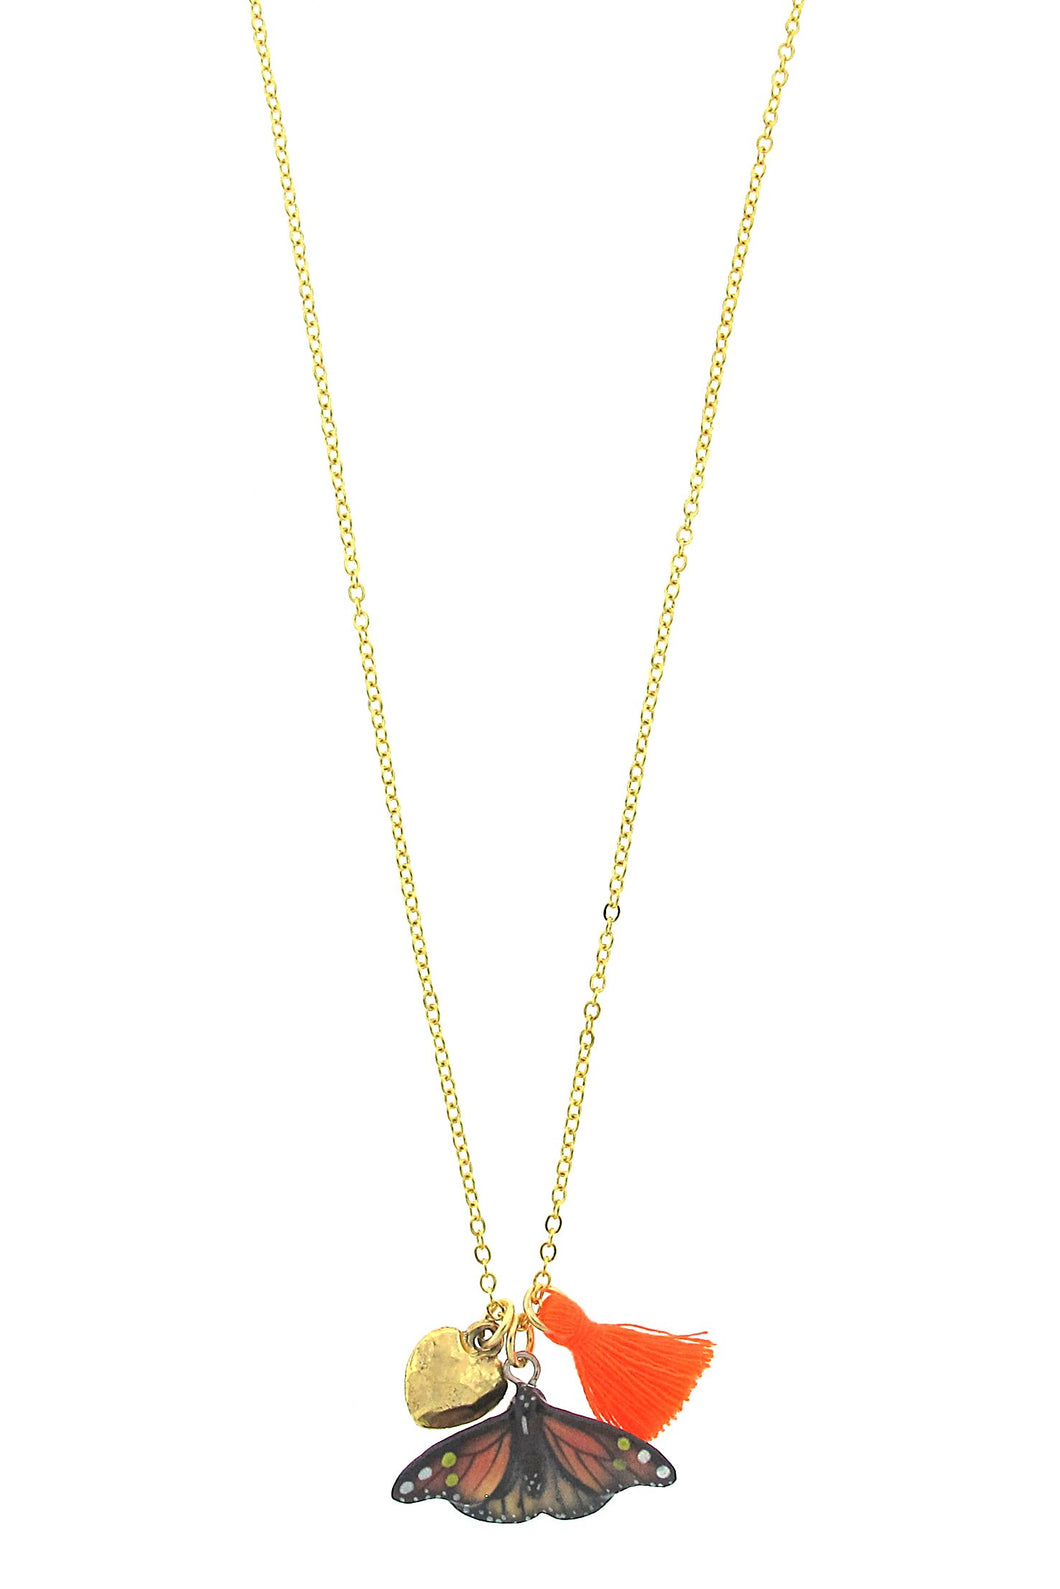 Orange Butterfly Lil' Critters Necklace